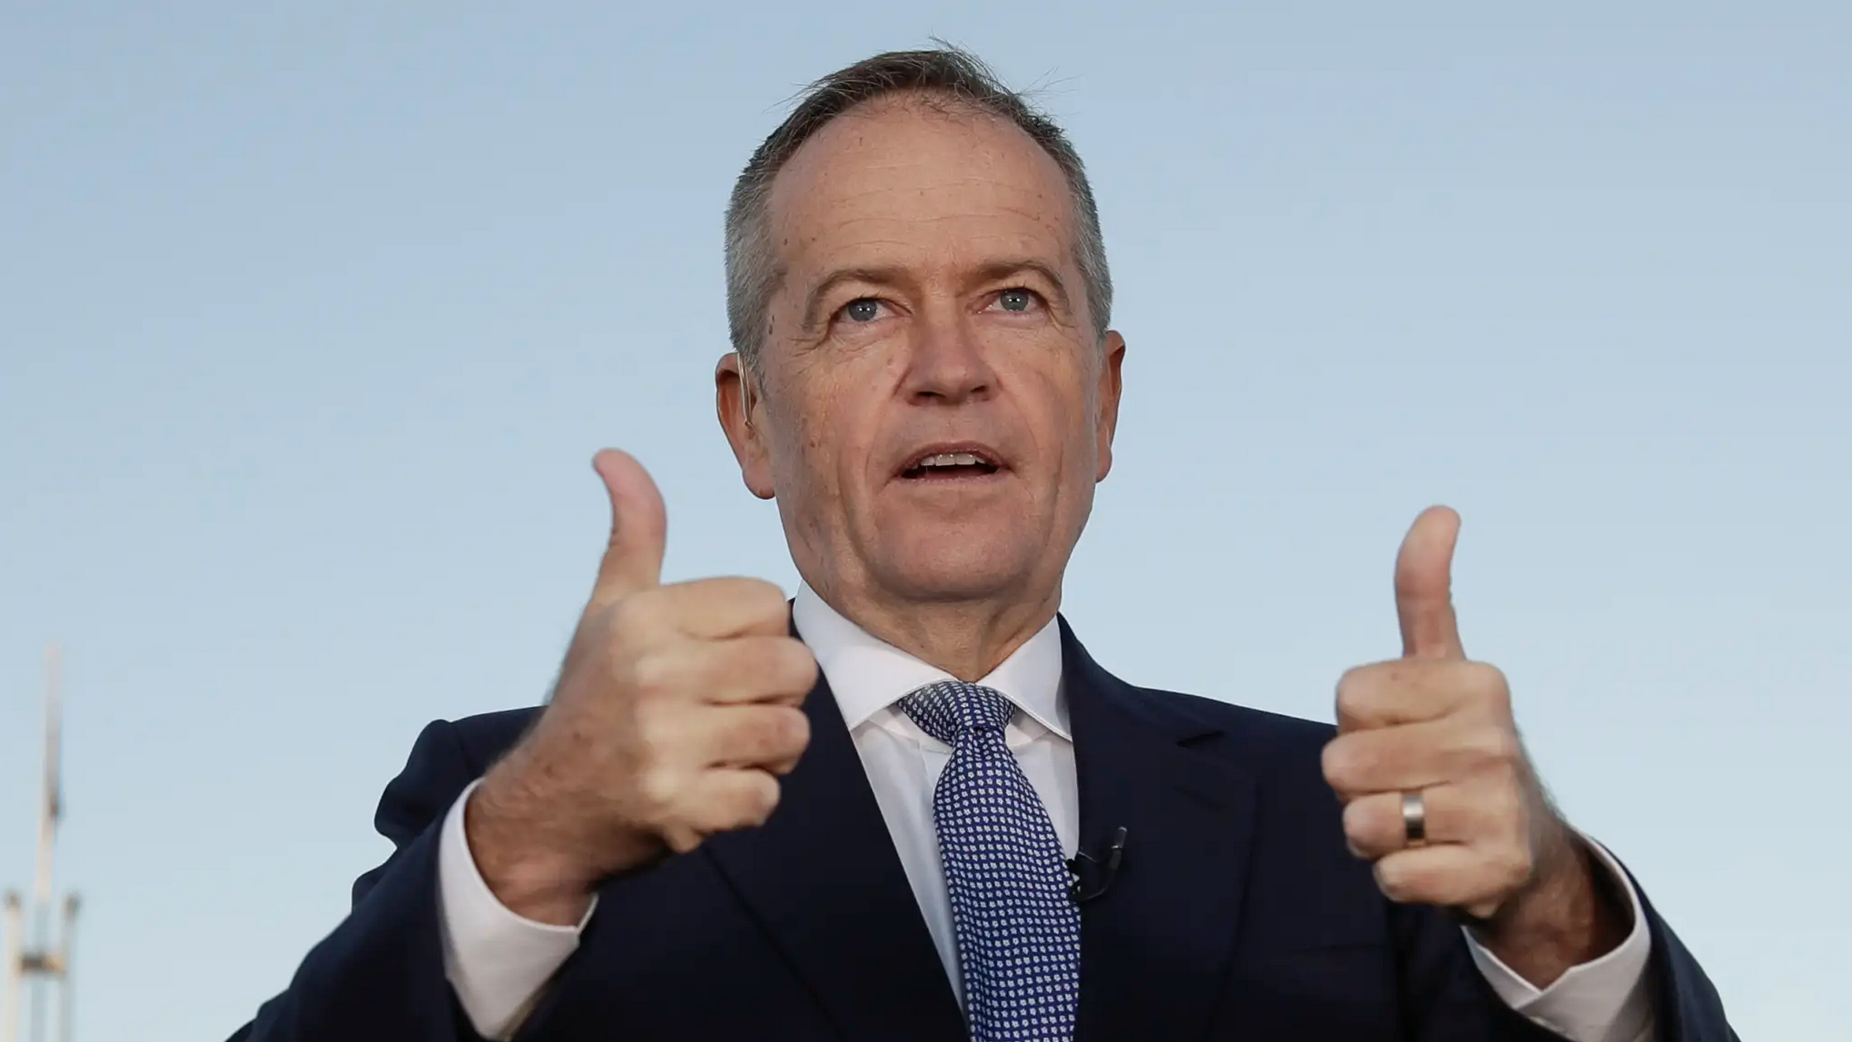 Bill Shorten has rated poorly in the areas of trustworthiness and honesty. Credit: Alex Ellinghausen